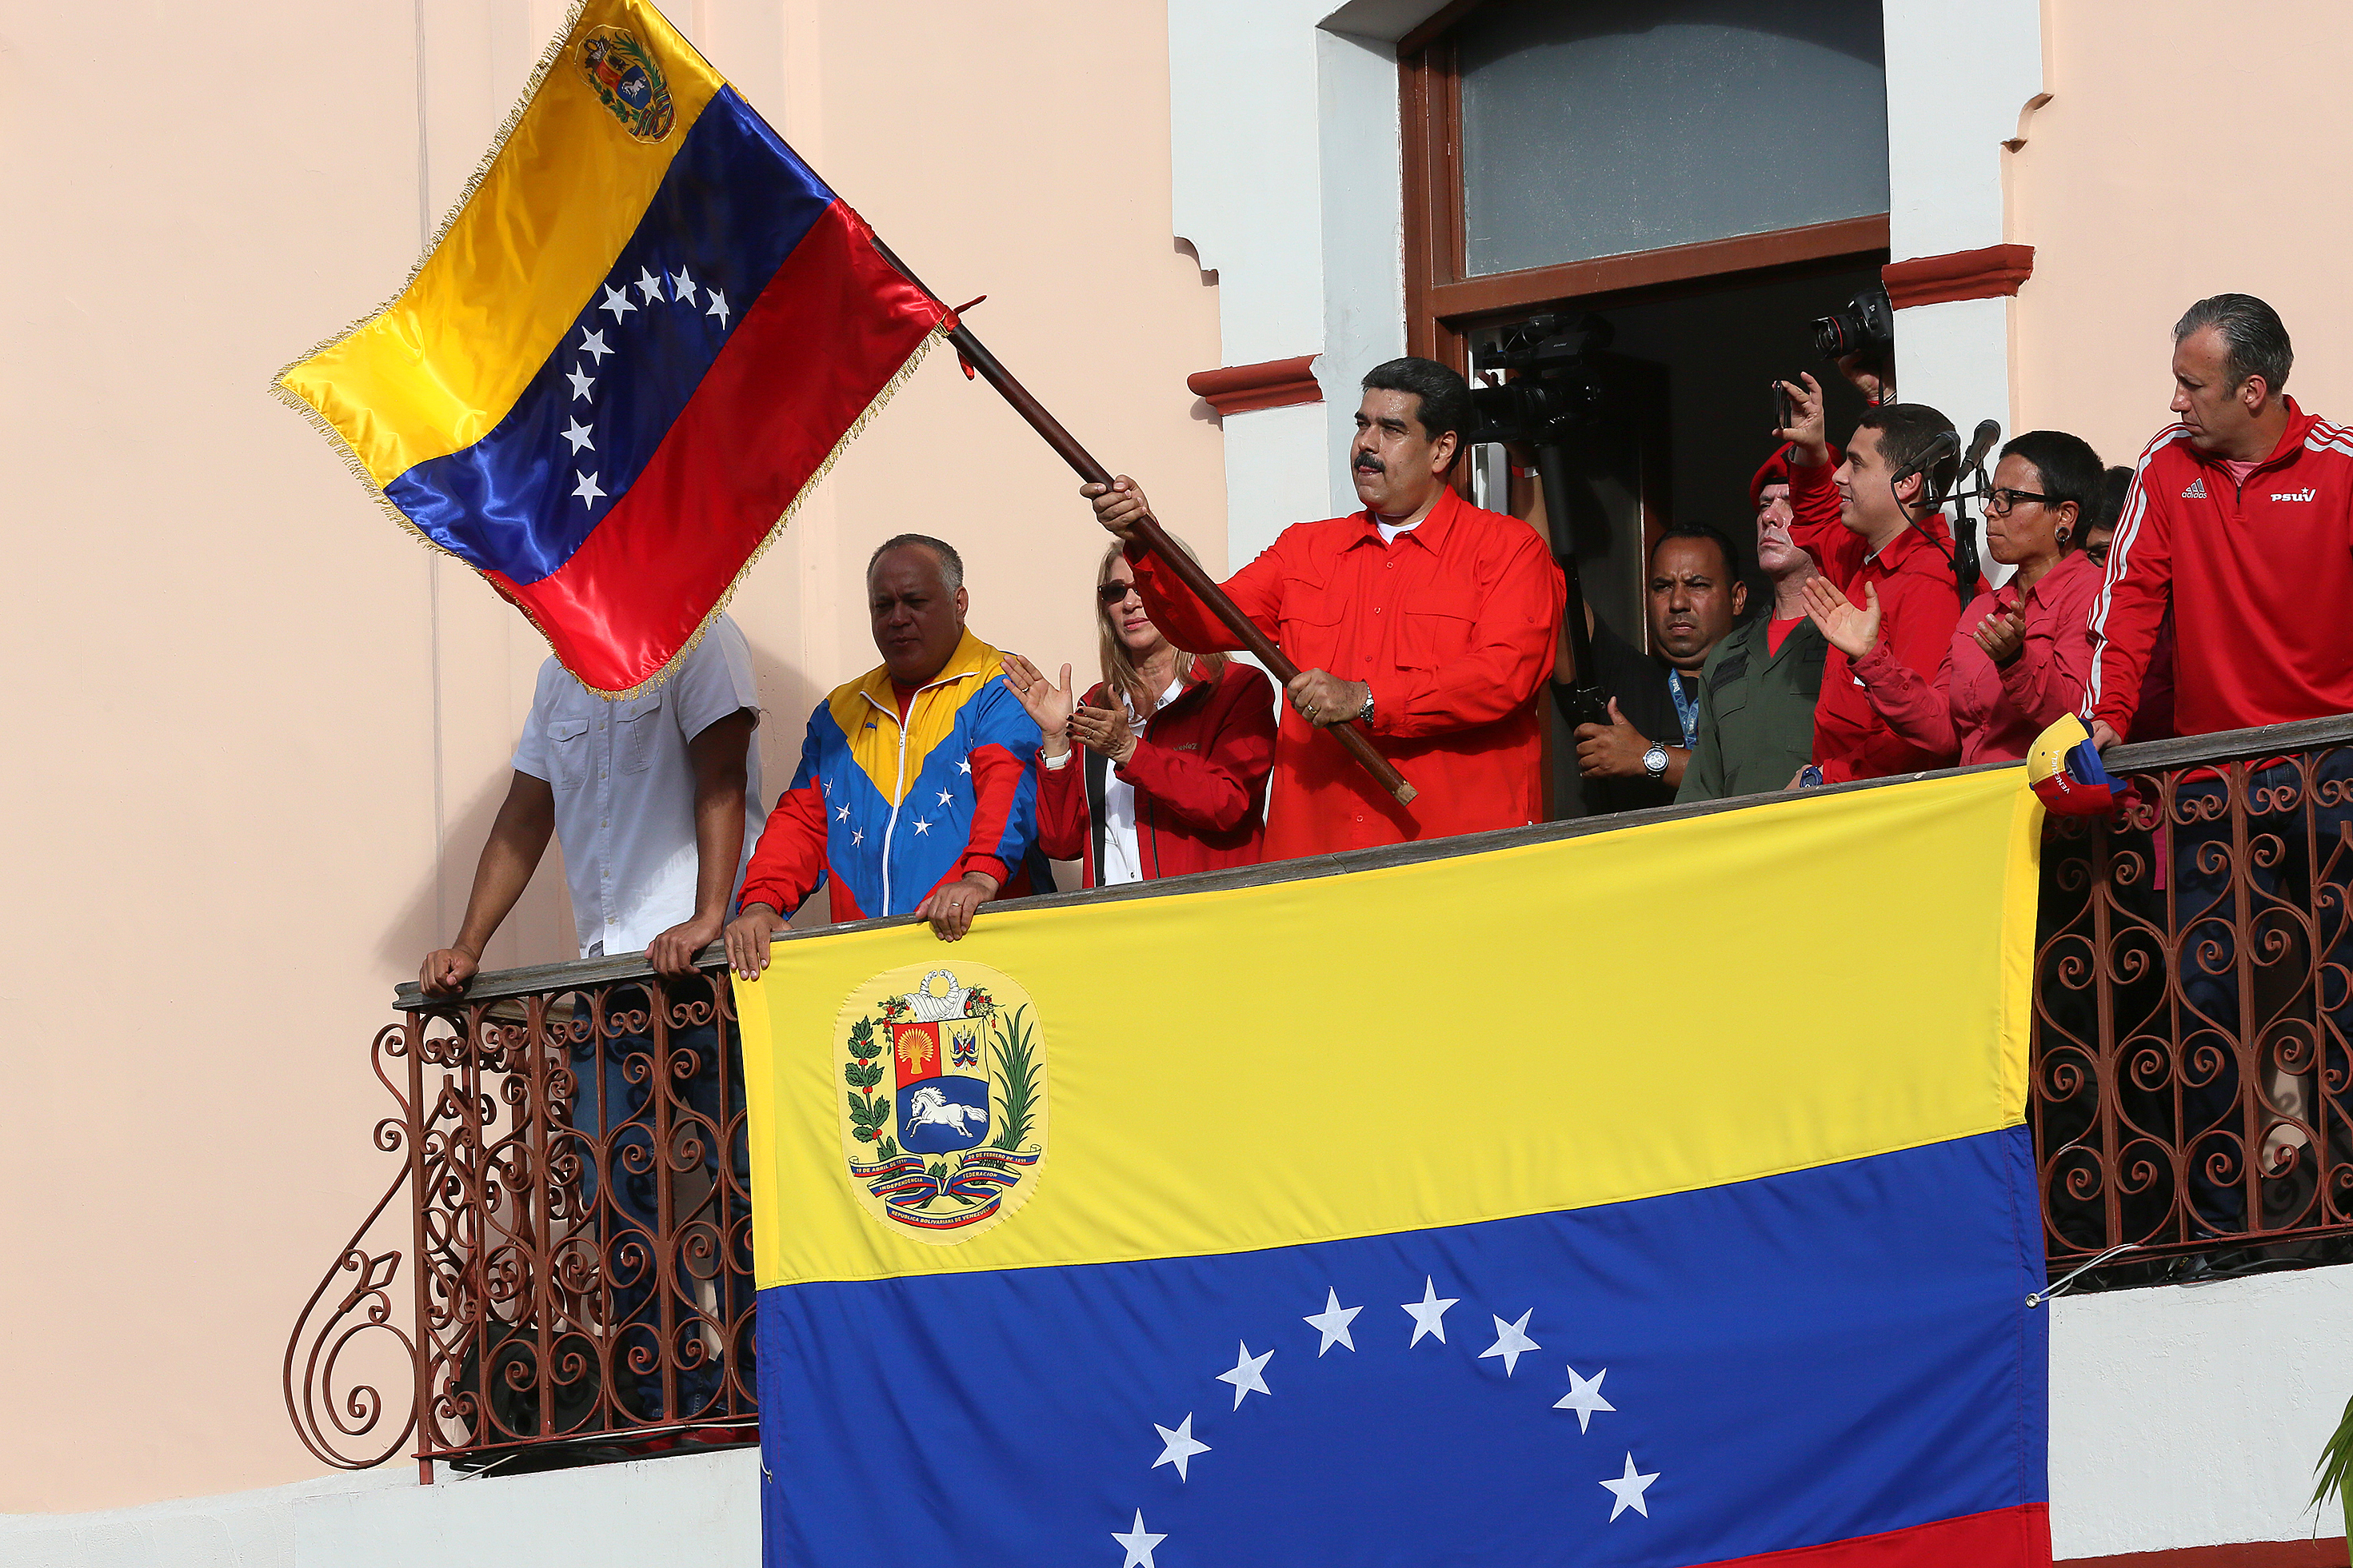 CARACAS, VENEZUELA - JANUARY 23: President of Venezuela Nicolás Maduro (C) waves a national flag as he is escorted by (FROM L TO R) Hector Rodriguez, Governor of Miranda; Diosdado Cabello, President of National Constitutional Assembly; Cilia Flores, First Lady; Major Erika Farias and Economic Vice President Tareck El Aissami at the Balcón del Pueblo of the Miraflores Government Palace on January 23, 2019 in Caracas, Venezuela. Earlier today, Venezuelan opposition leader and head of the National Assembly Juan Guaido declared self interim president as was officially accepted by presidents of many countries such as US, Brazil, Chile, Canada and Argentina. Head of Supreme Justice tribunal Juan Jose Mendoza urged general attorney to act against a constitution violation. Protests continue in Caracas. (Photo by Edilzon Gamez/Getty Images)